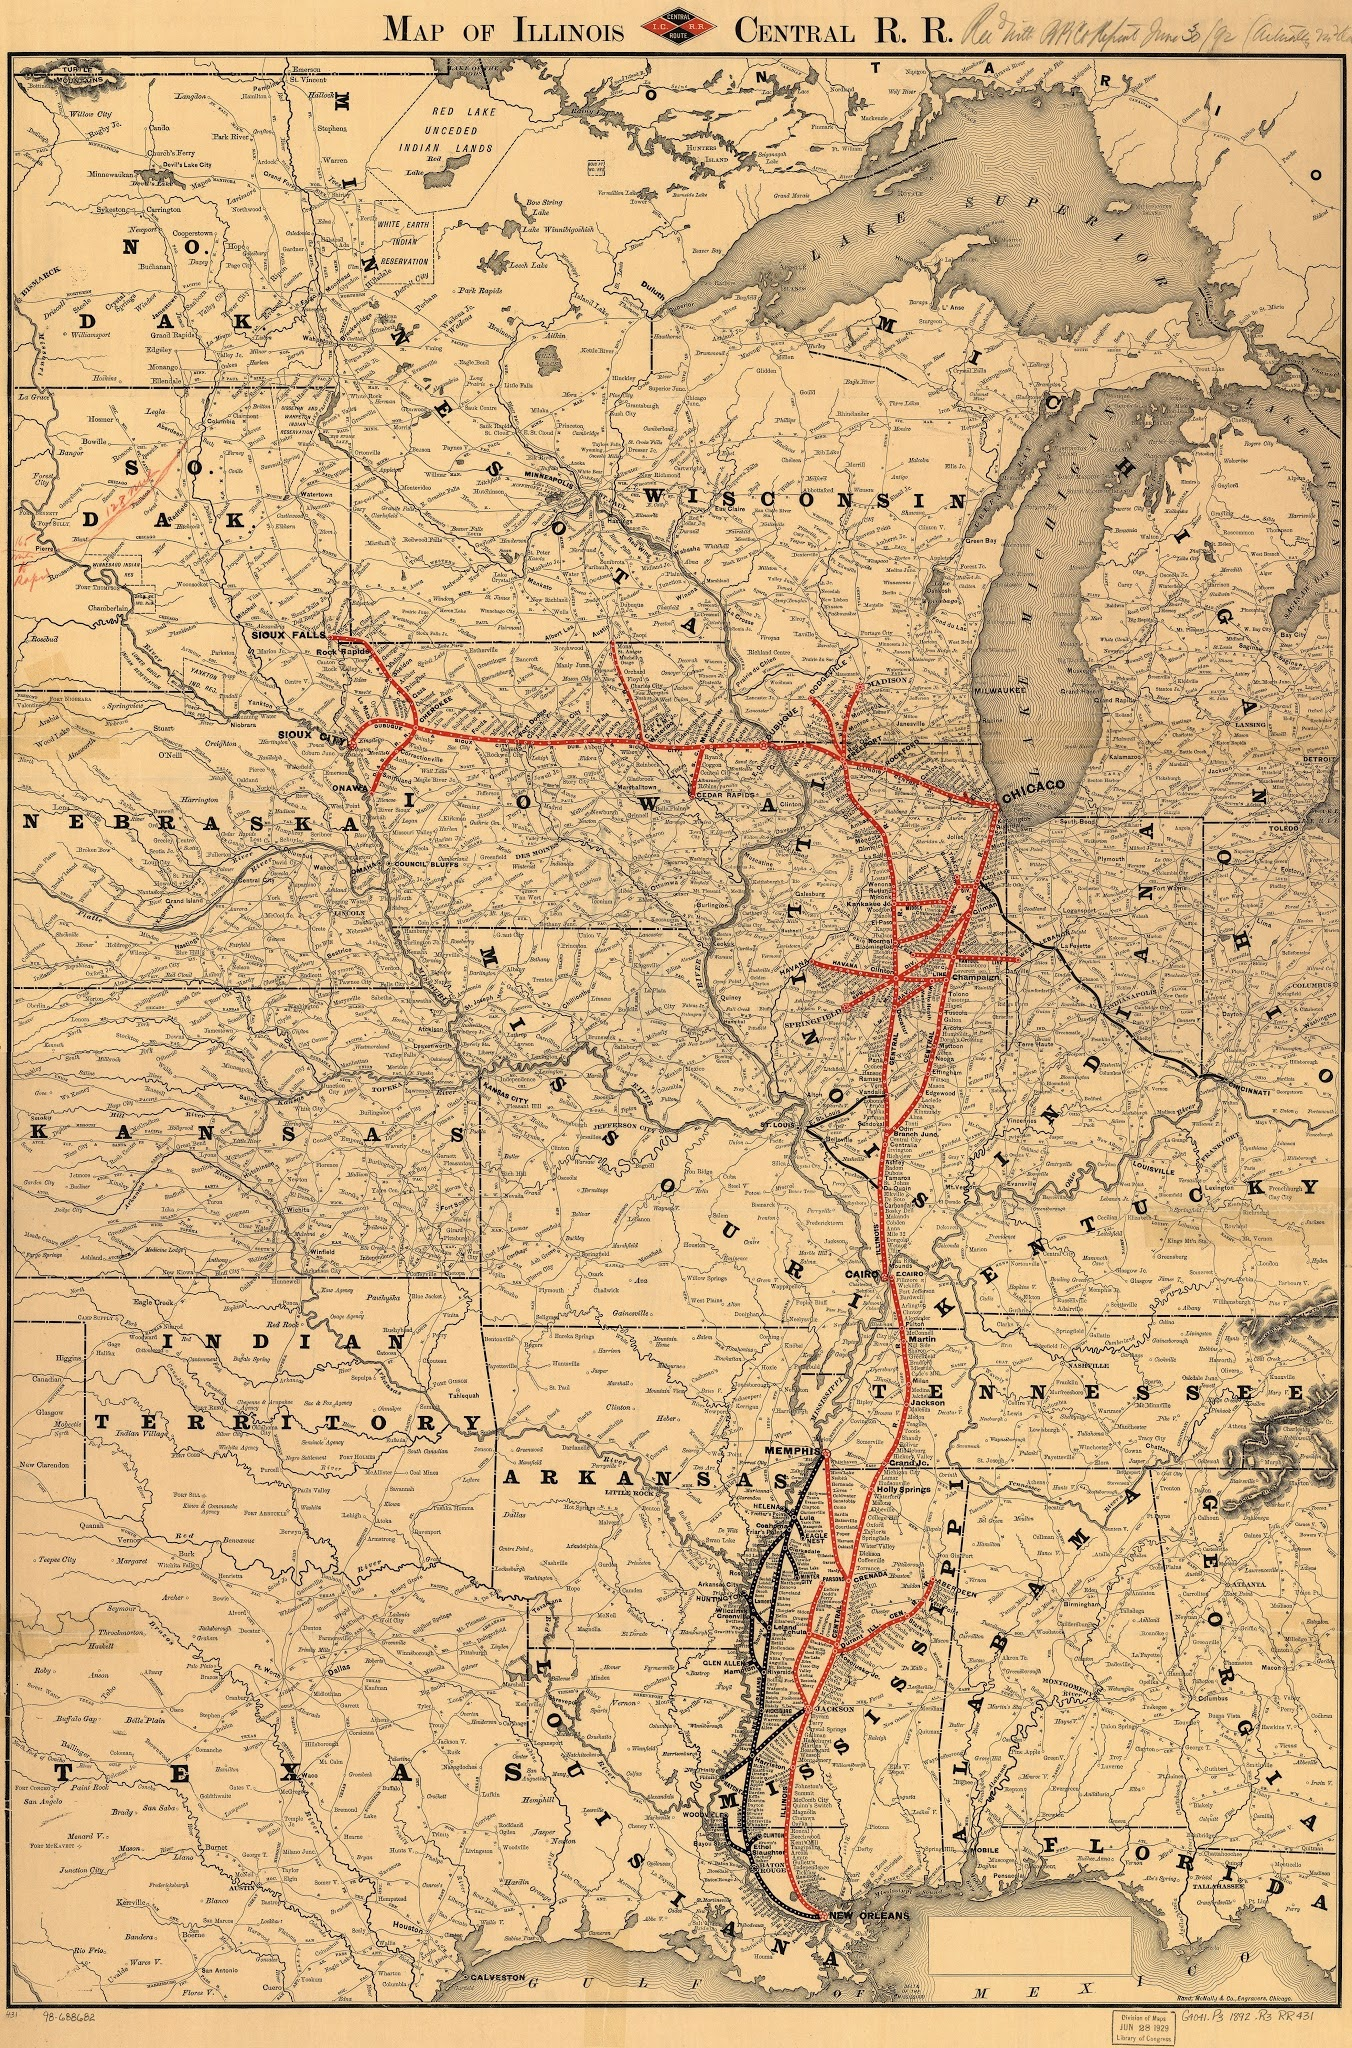 Vintage infographic Map of Illinois Central Railroad (1892)